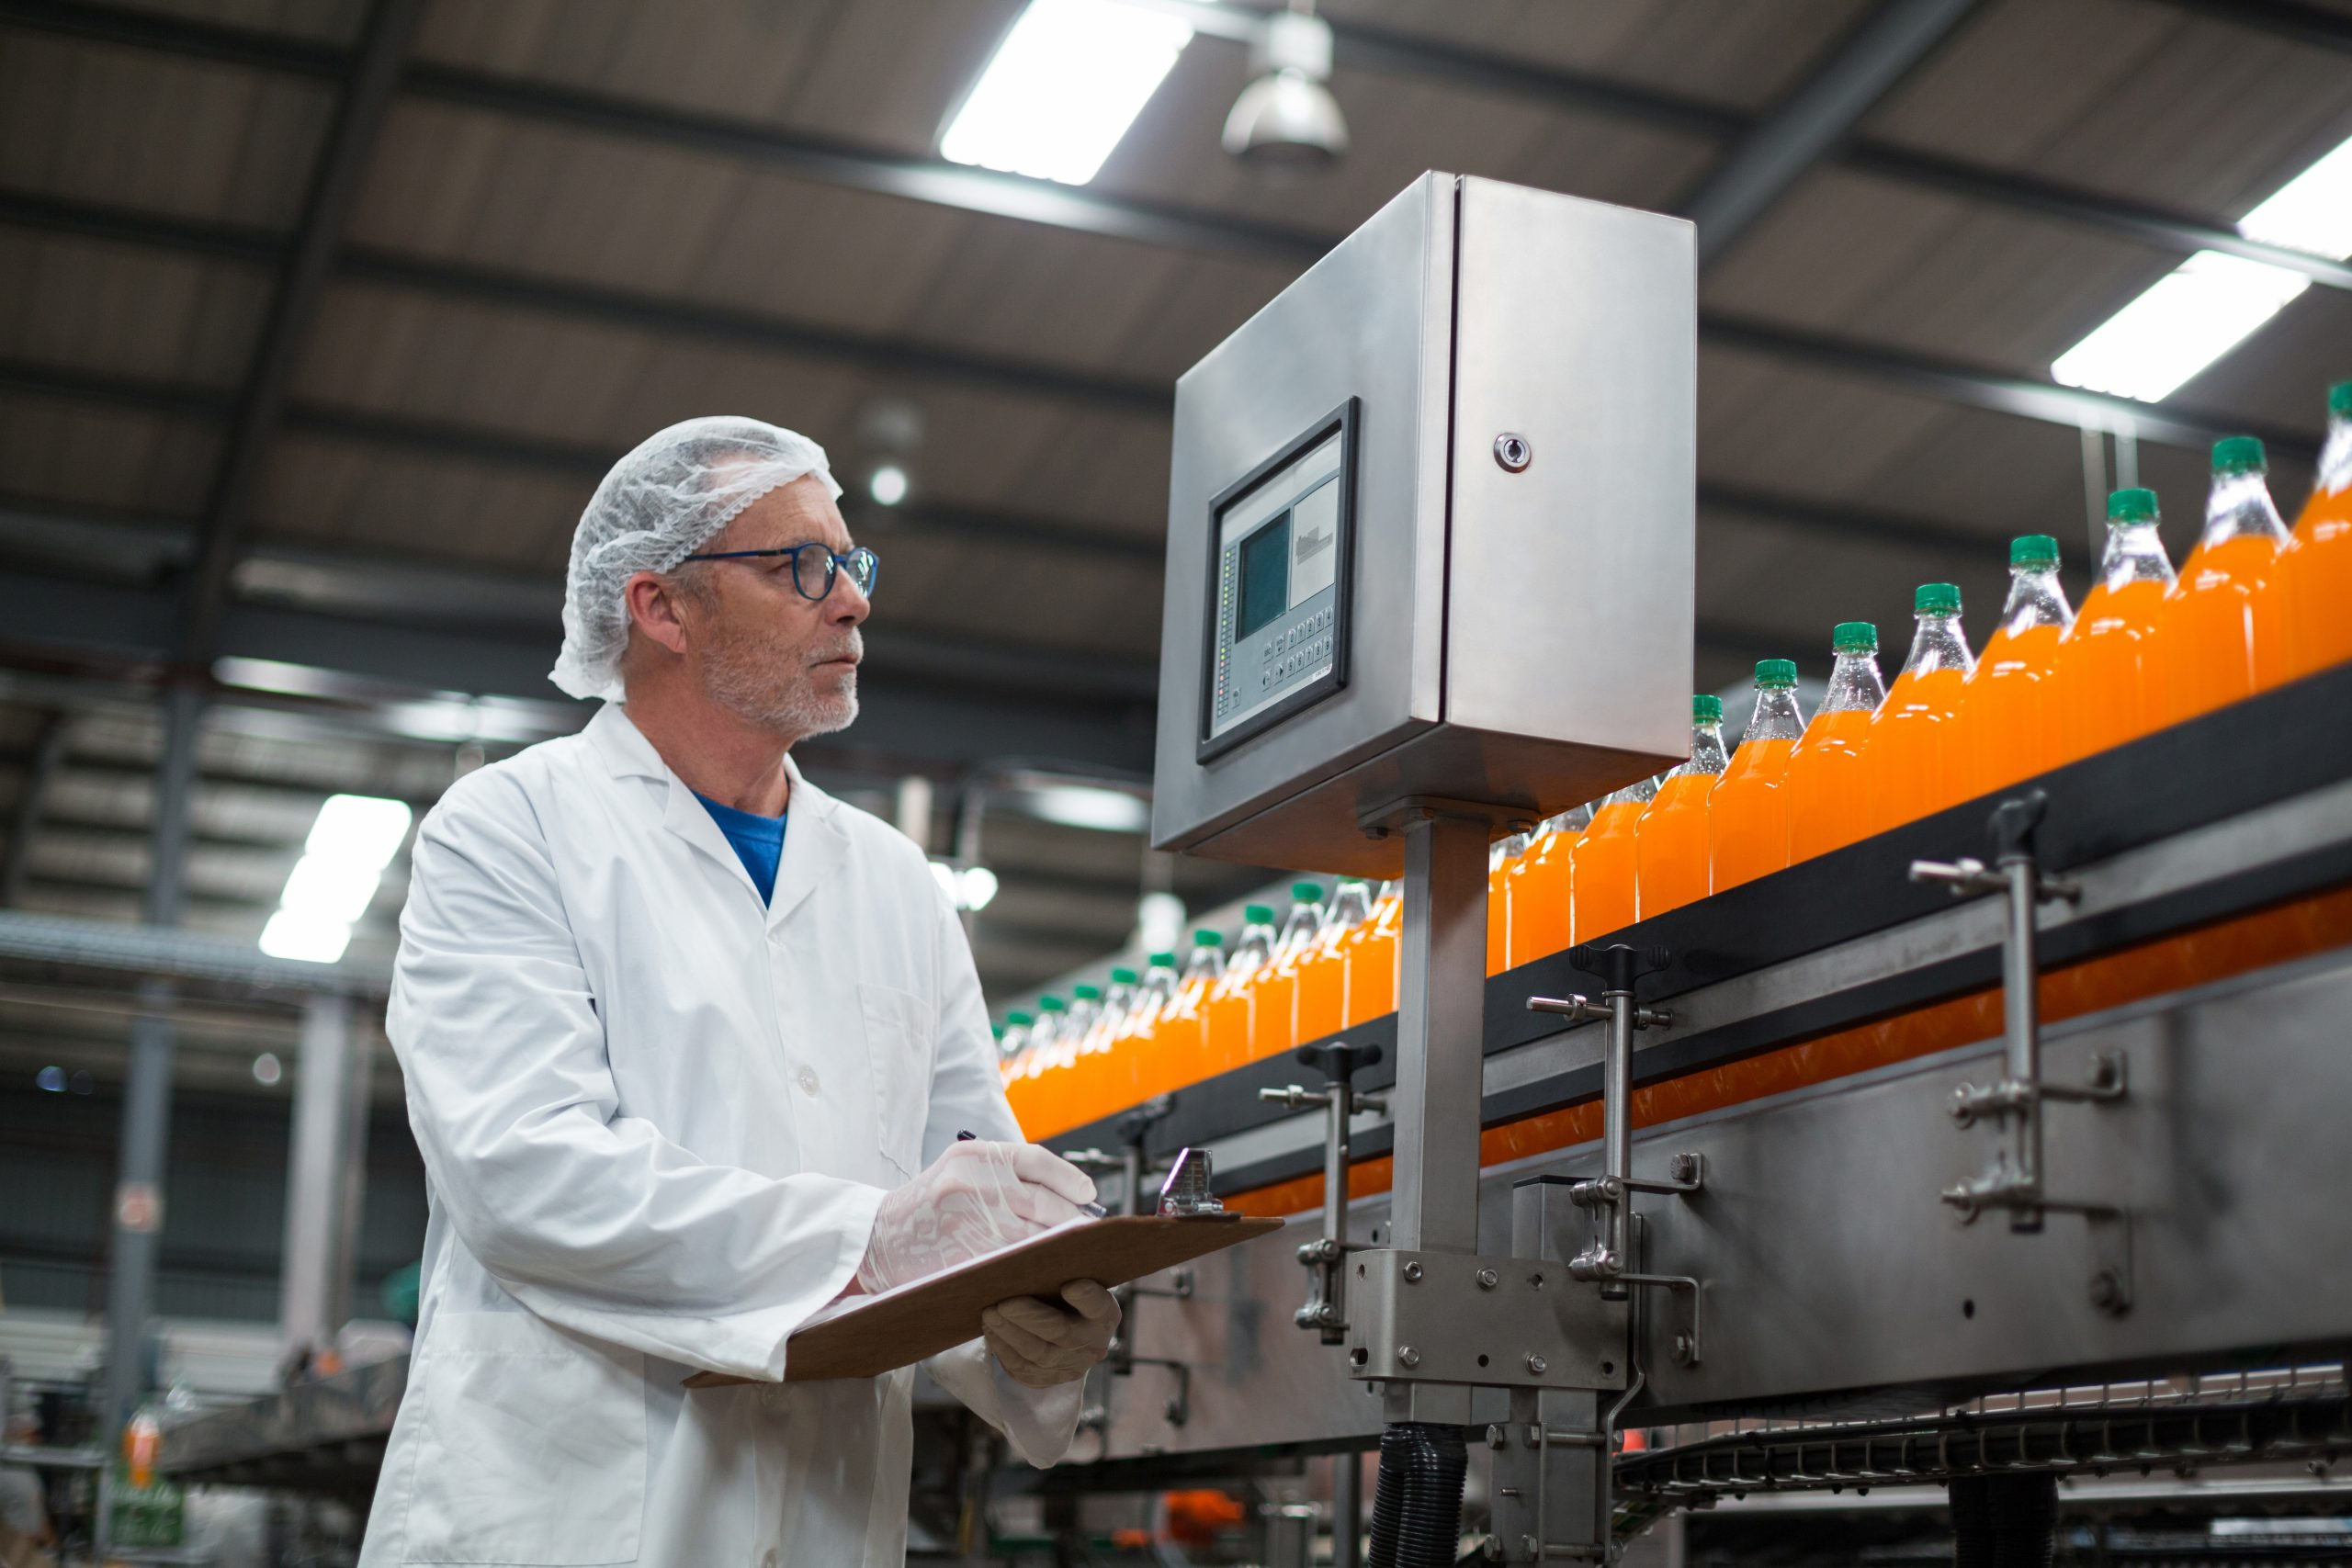 Synergy Food Group Contract Juice Beverage Manufacturing Co-Packing Private Label Sydney Australia